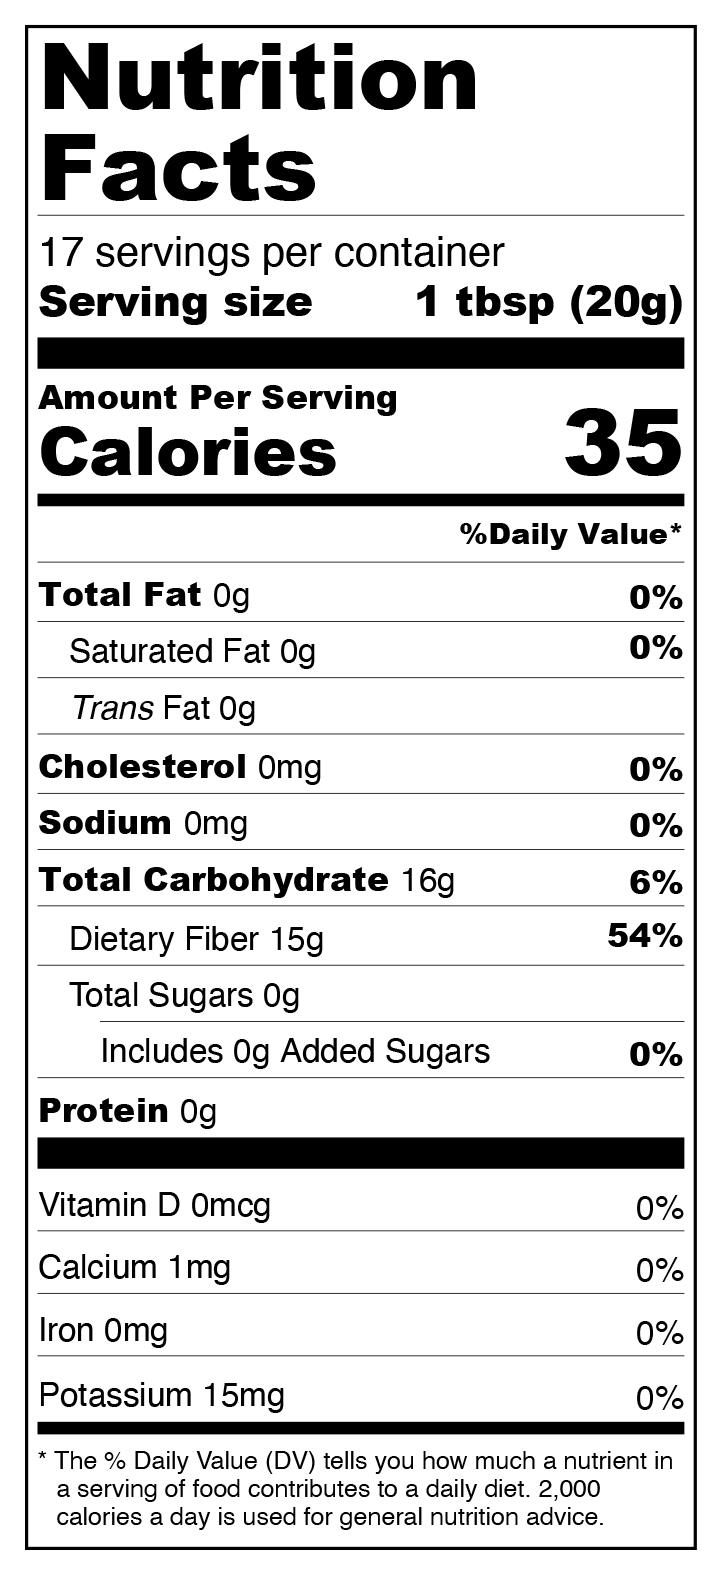 Sugar Free Maple Syrup - Low Carb, Keto Nutrition Facts